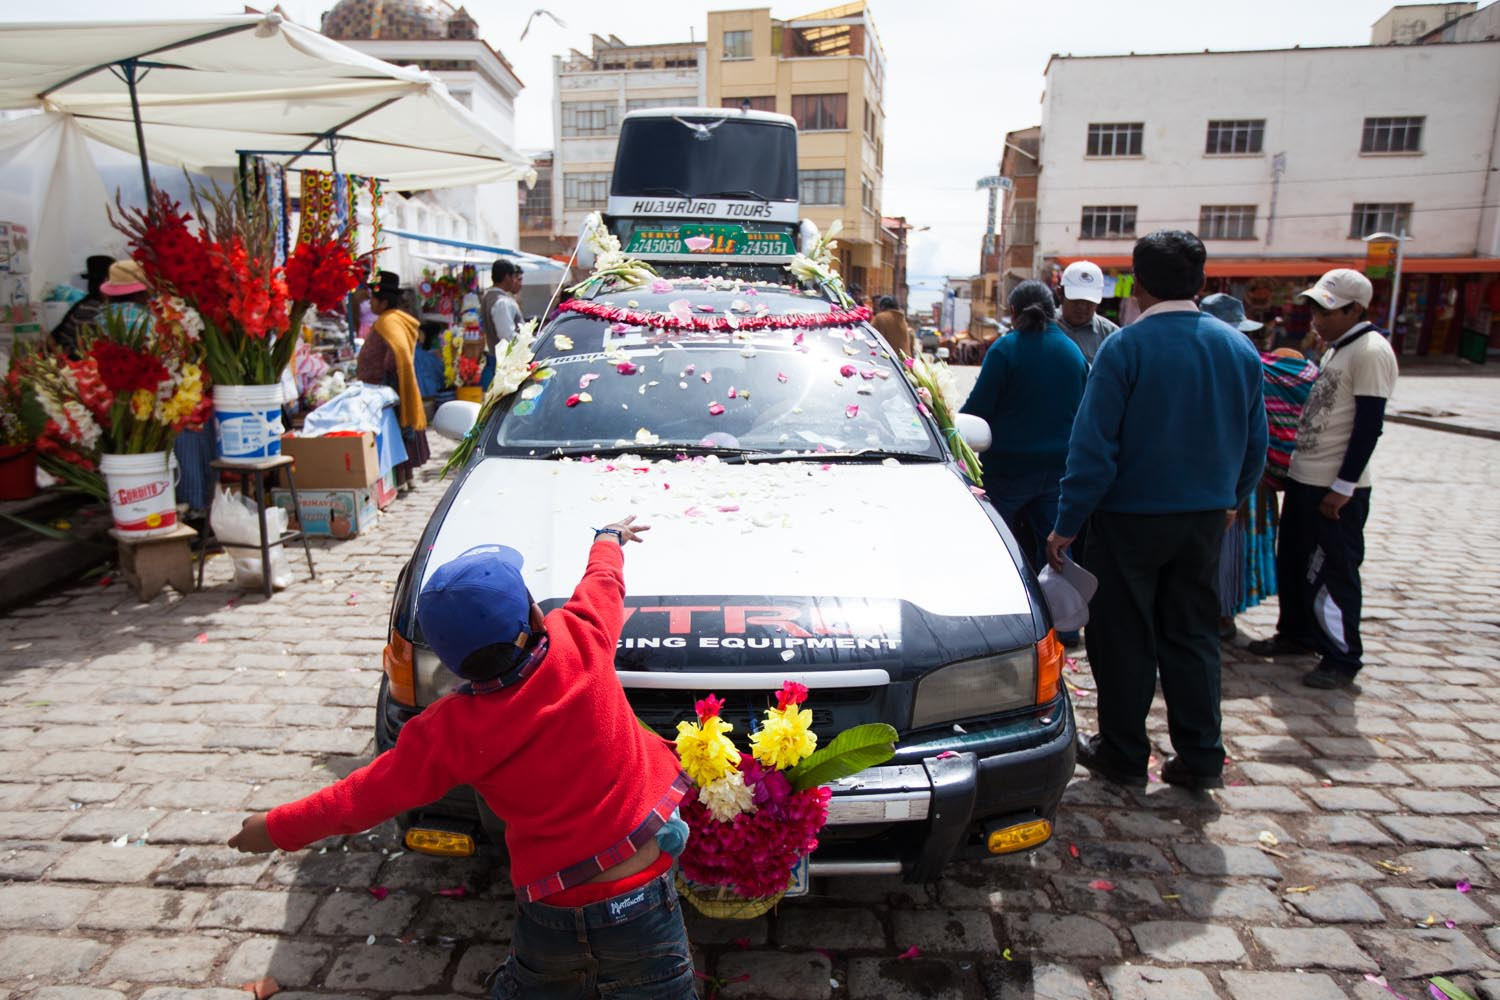 Blessings for the journey: Copacabana, Bolivia